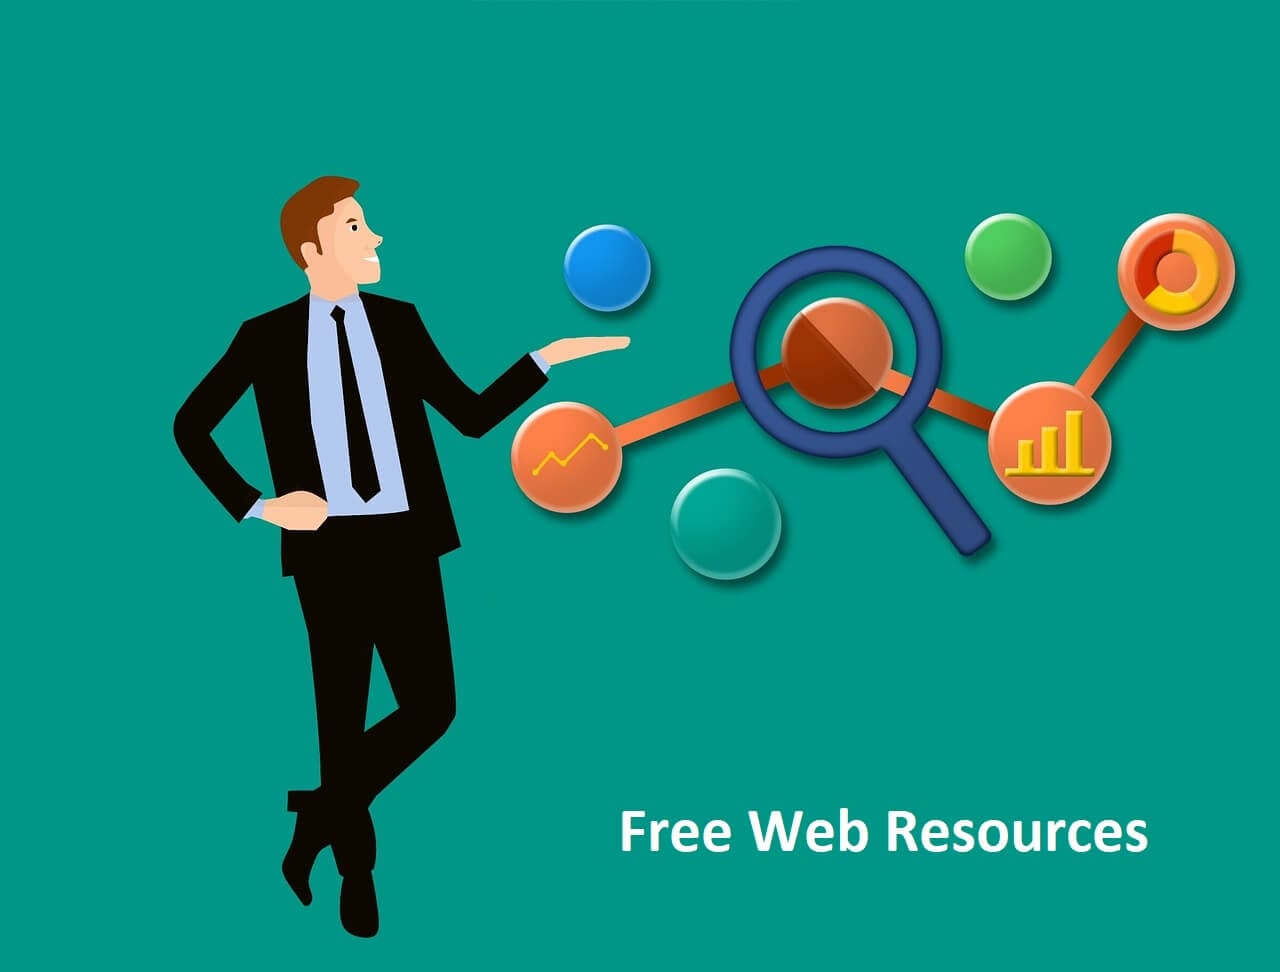 Free Web Resources